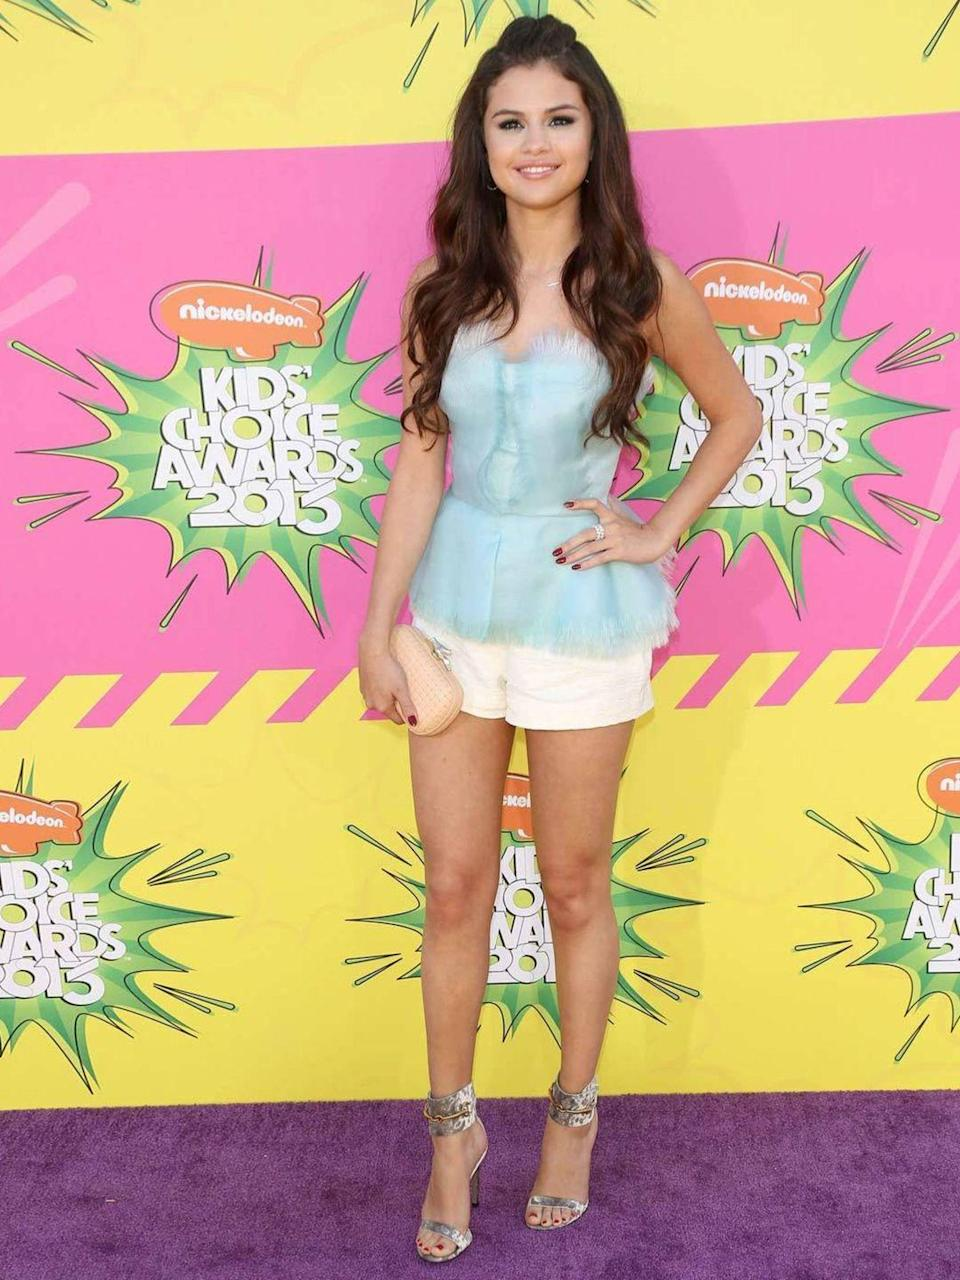 <p>Selena Gomez poses for the cameras at the Kids Choice Awards wearing a peplum top paired with white shorts by Oscar de la Renta, March 2013.</p>